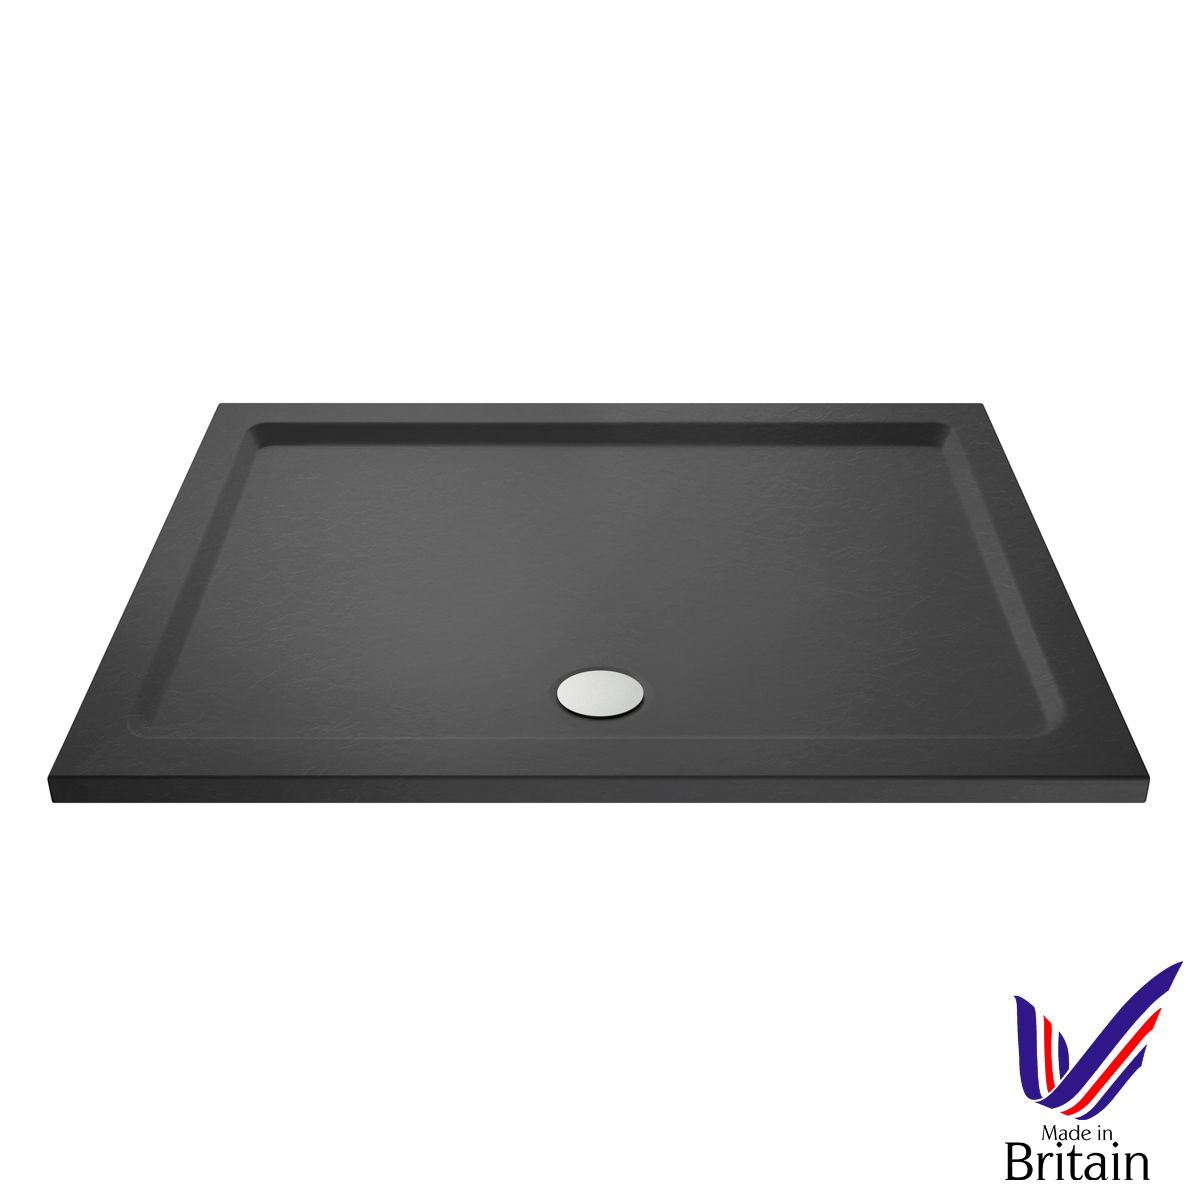 1600 x 900 Shower Tray Slate Grey Rectangular Low Profile by Pearlstone